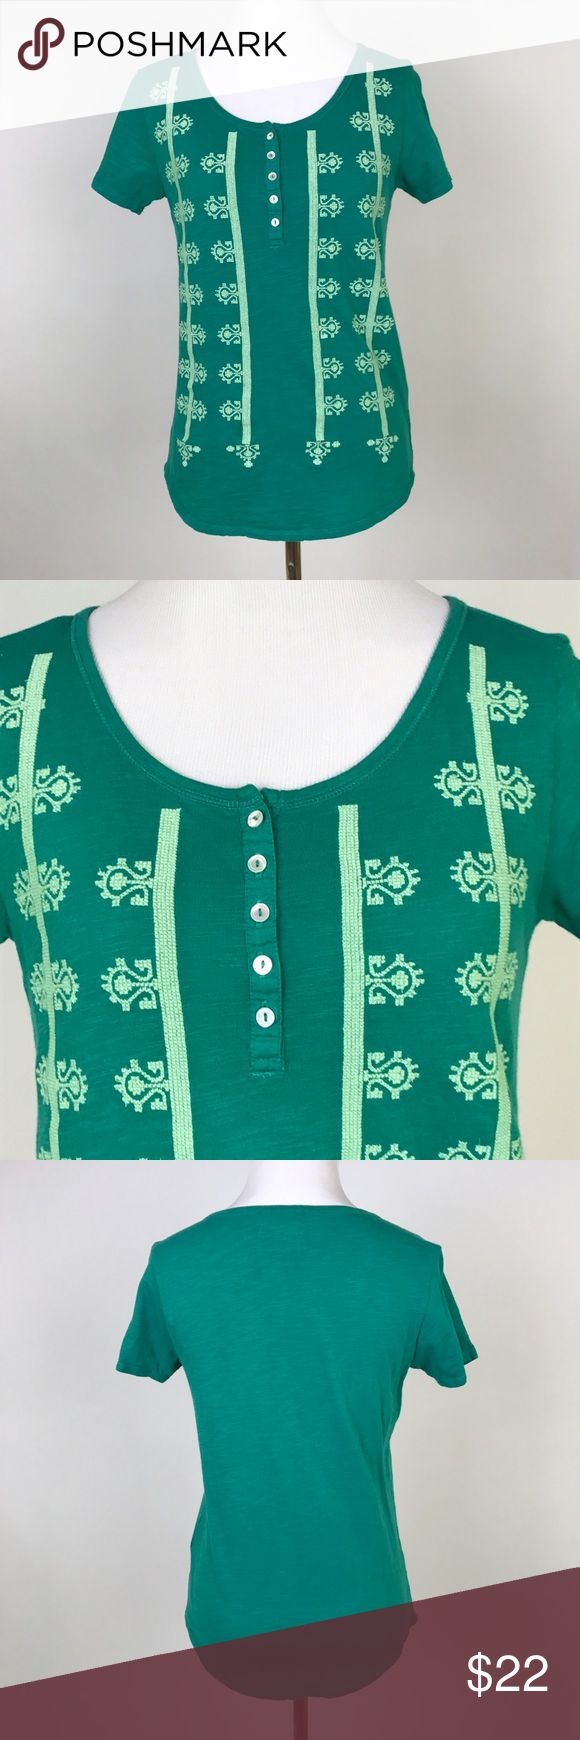 "[Lucky Brand] Embroidered Henley Top Green Boho S Green short sleeve top with henley button placket. Scoop neck. Curved hem. Embroidered on front.  🔹Pit to Pit: 16"" 🔹Length: 23"" 🔹Condition: Excellent pre-owned condition.  *U22 Lucky Brand Tops Tees - Short Sleeve"